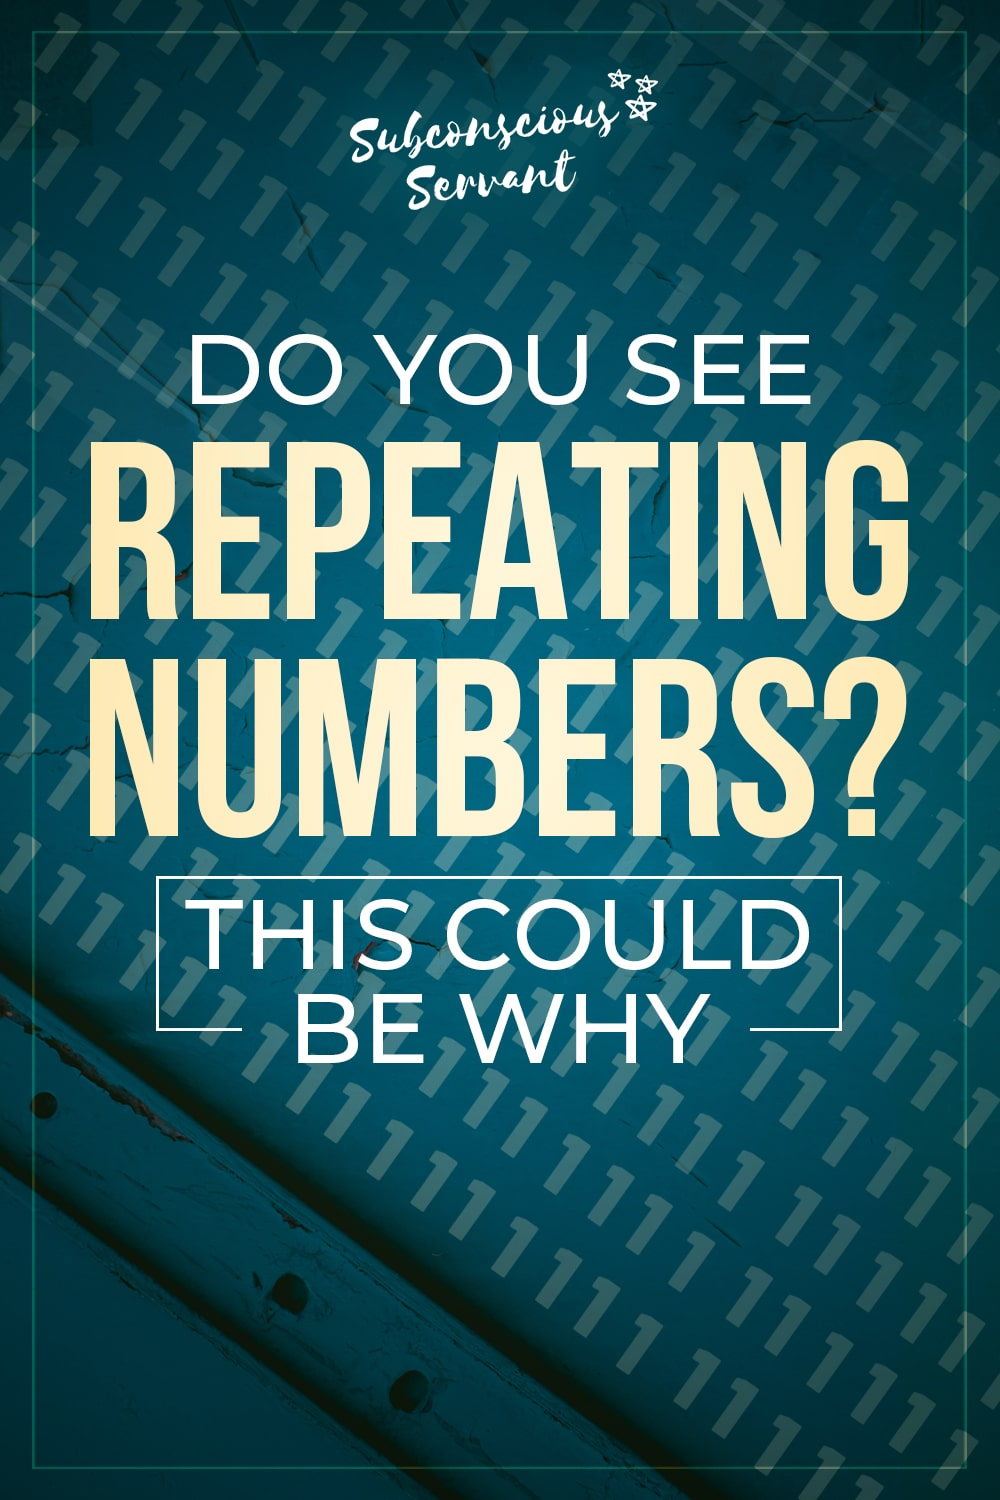 What Is The Hidden Meaning of Seeing Repeating Numbers?